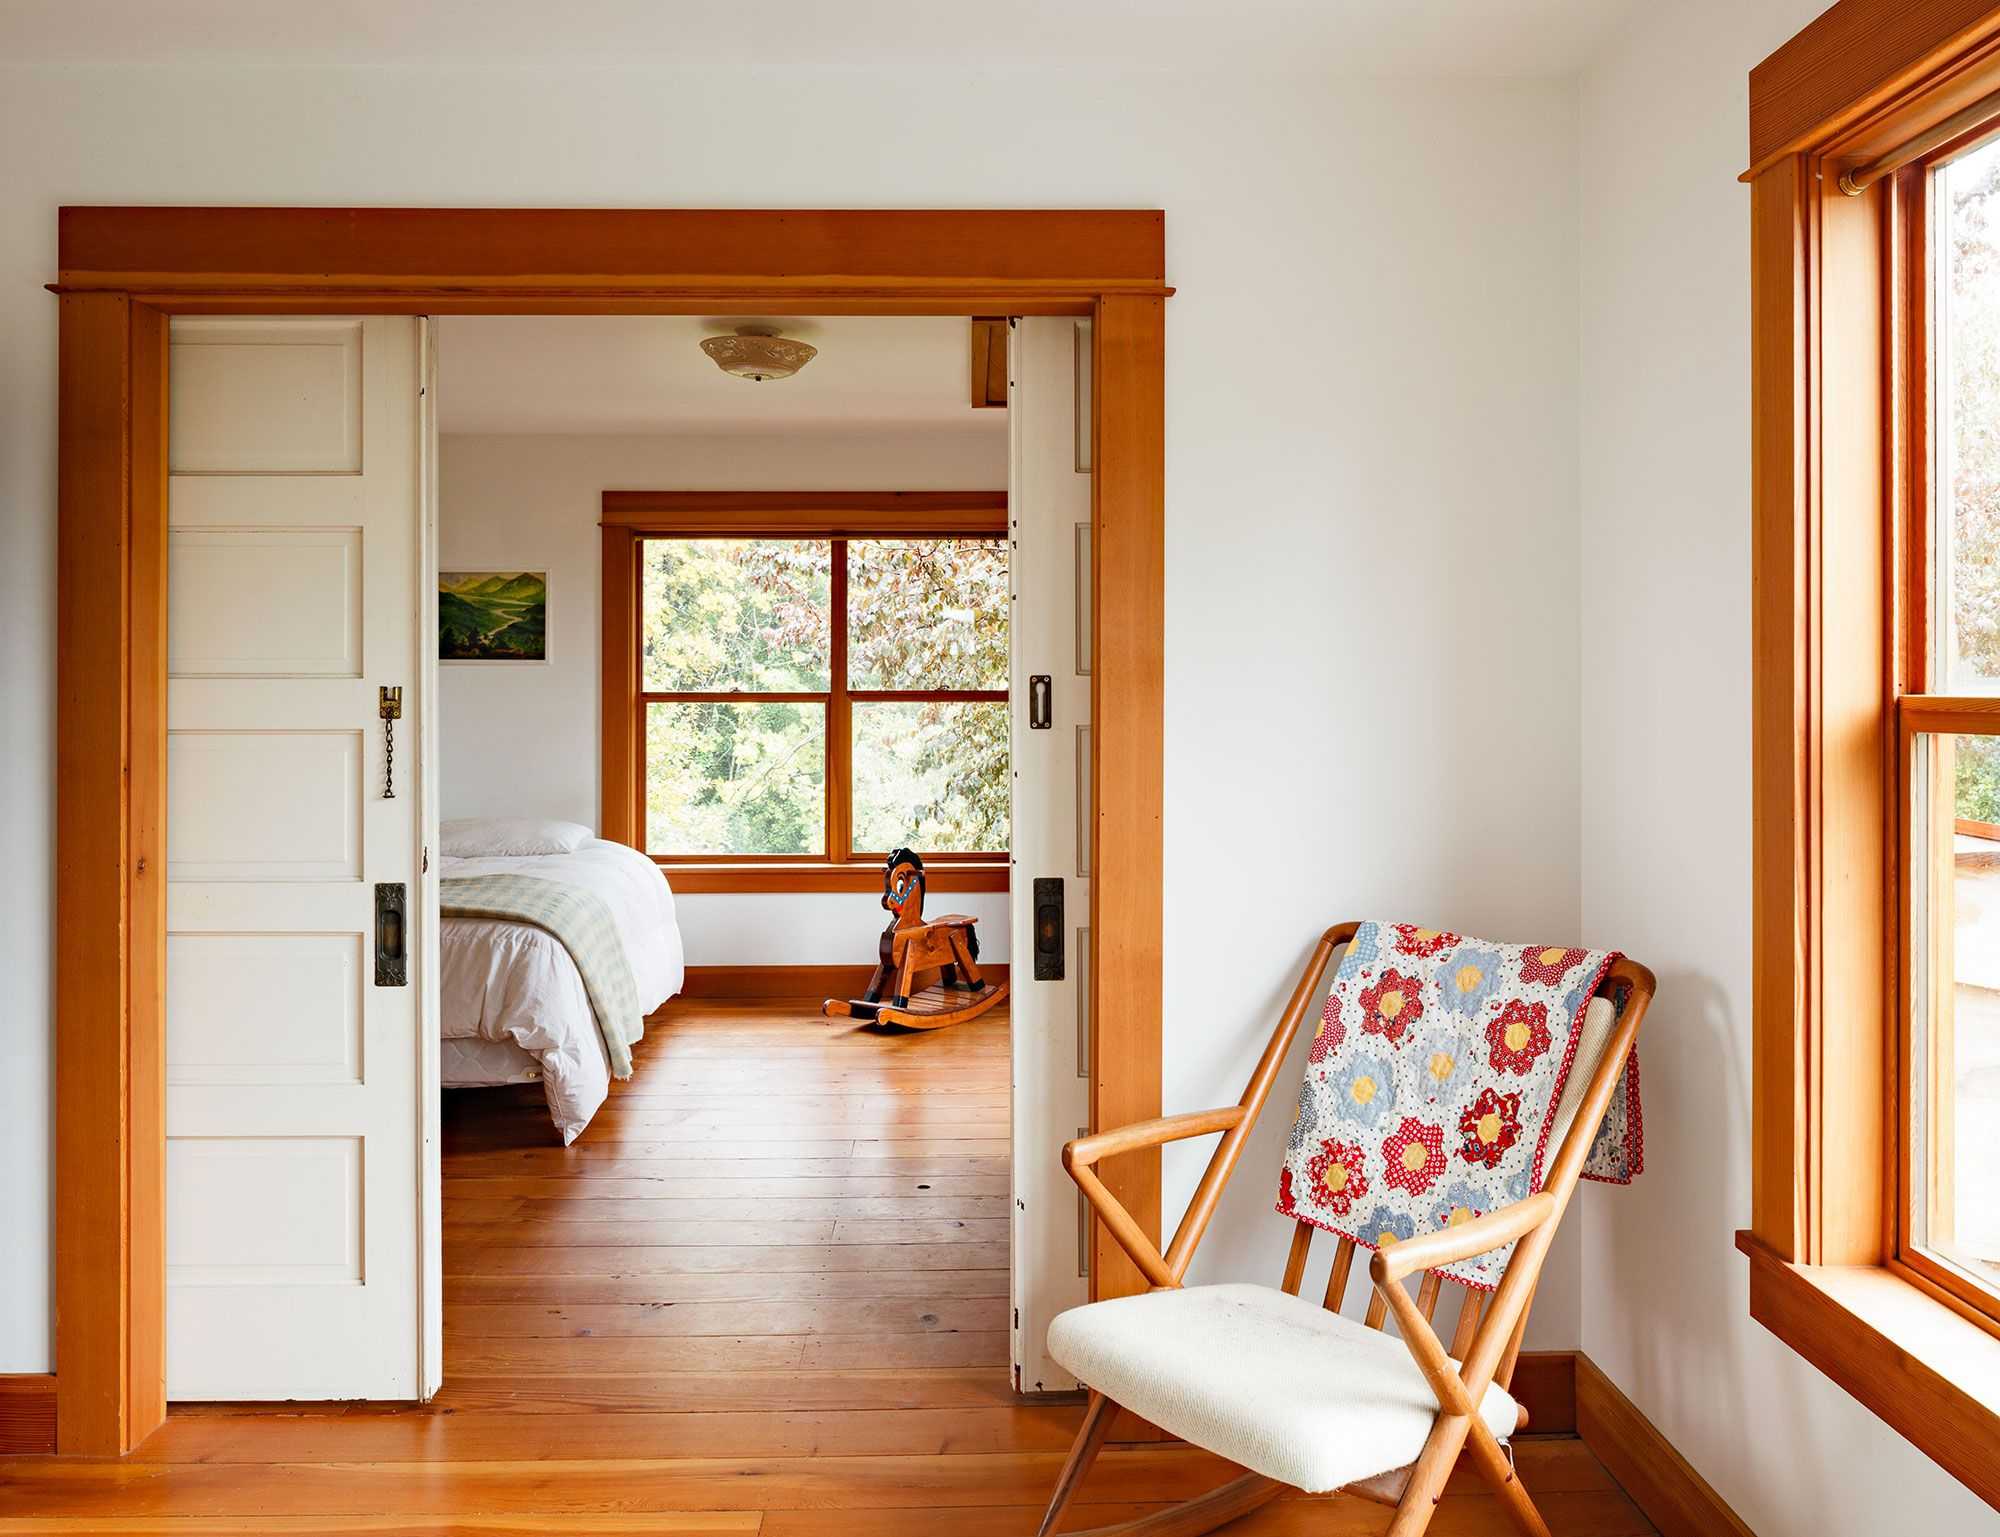 White interior doors with wood trim - Just Embrace The Orangish Wood Tone Of The Trim Stain The Floors To Match Interior Doorsinterior Ideaswhite